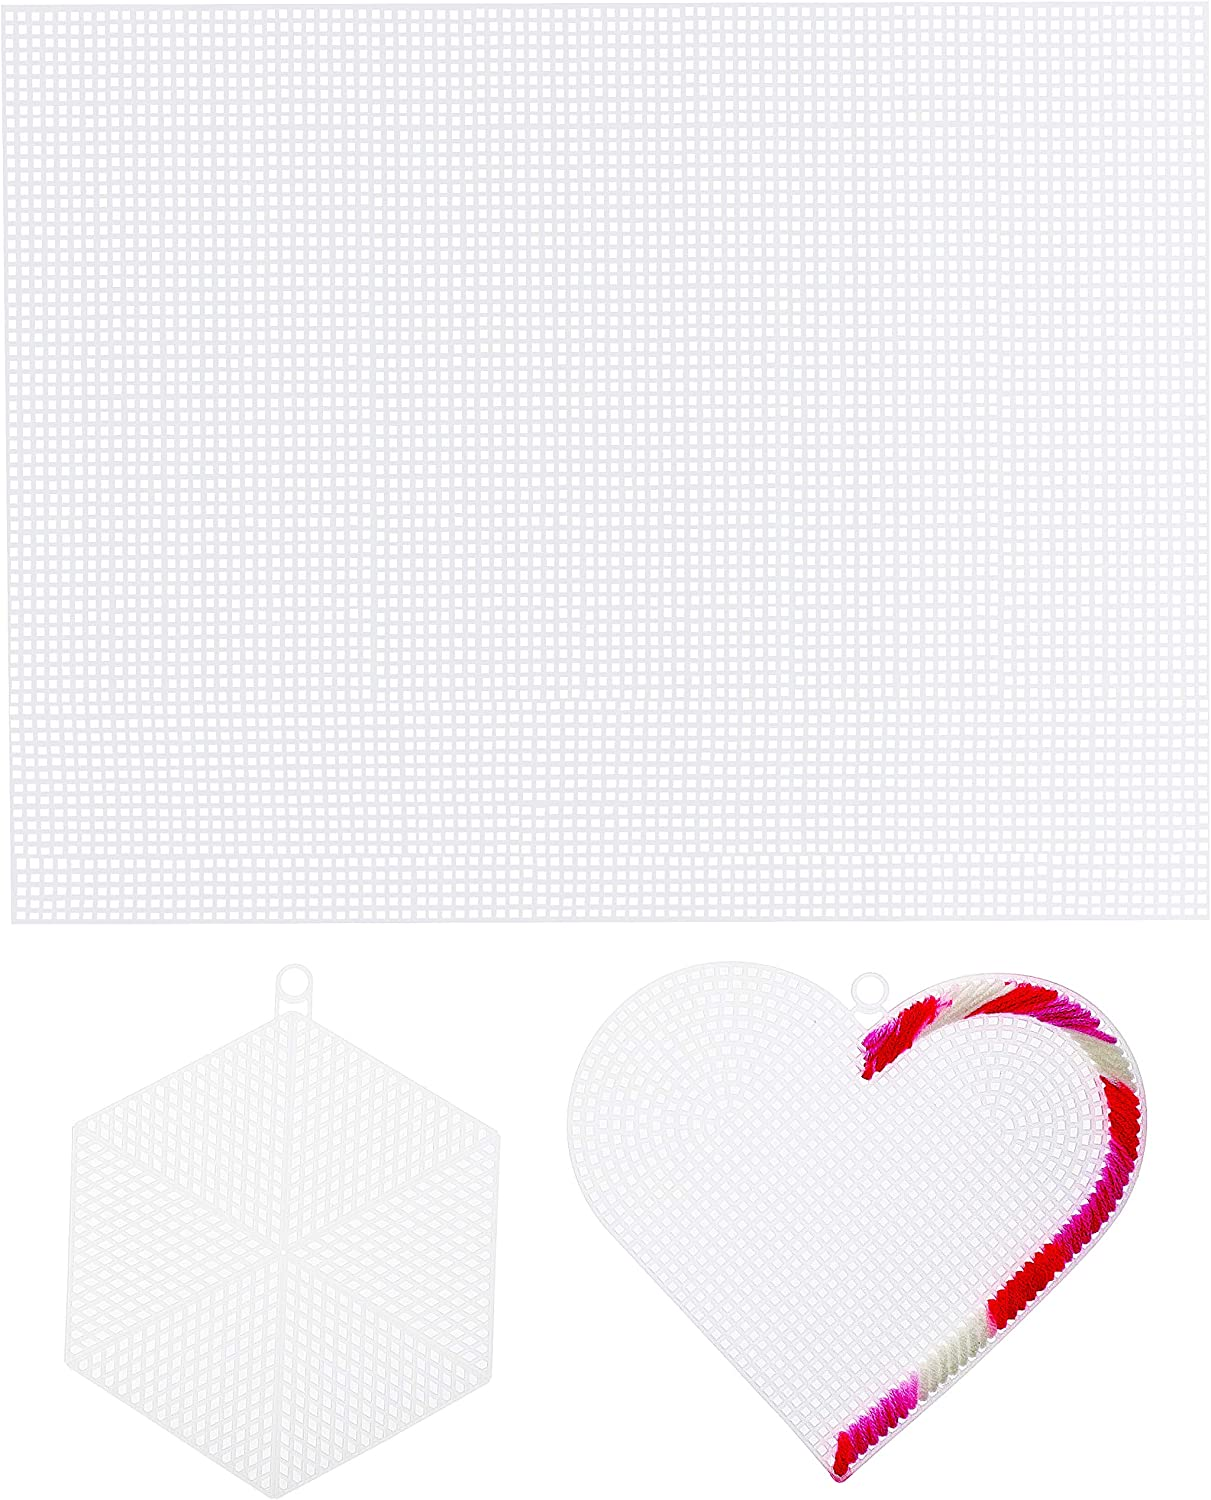 20 Square Sheets and 3 Hexagon Shapes Juvale 26-Pack Plastic Canvas Needlepoint Set 3 Heart